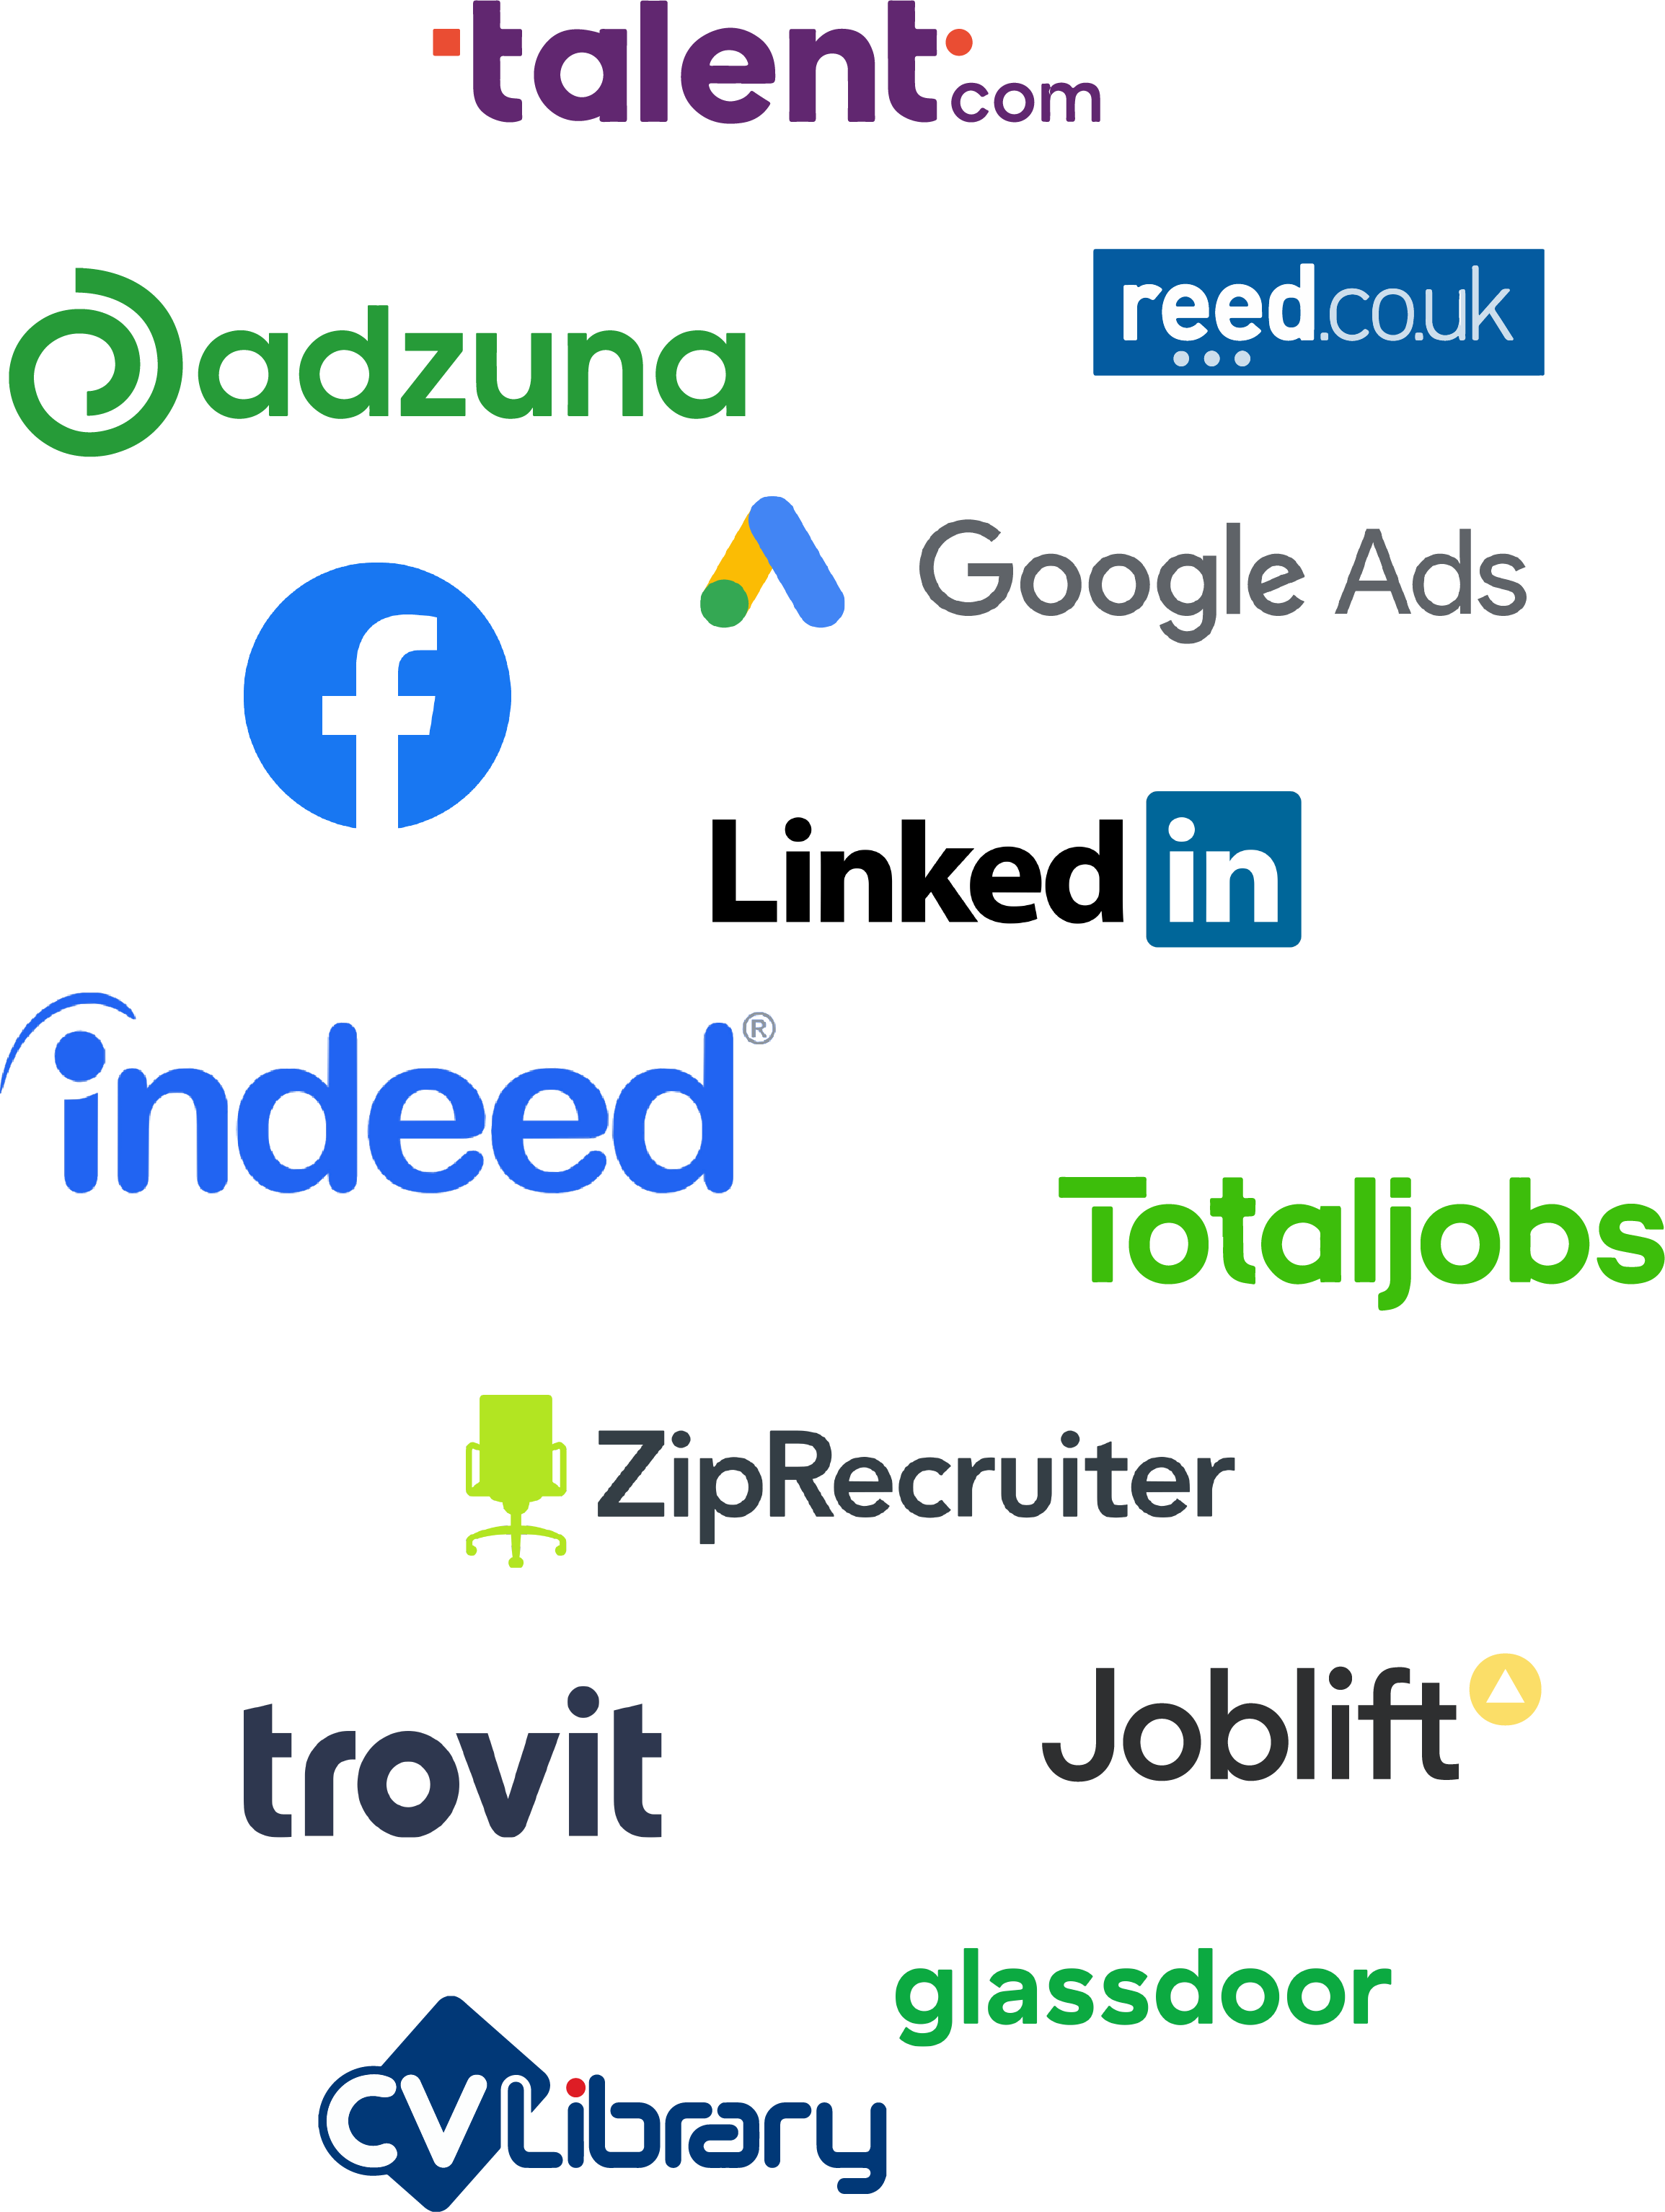 Our network includes talent.com, Adzuna, Reed.co.uk, Google Ads, Facebook, LinkedIn, Indeed, Totaljobs, ZipRecruiter, Trovit, Joblft, Glassdoor, CVLibrary and more